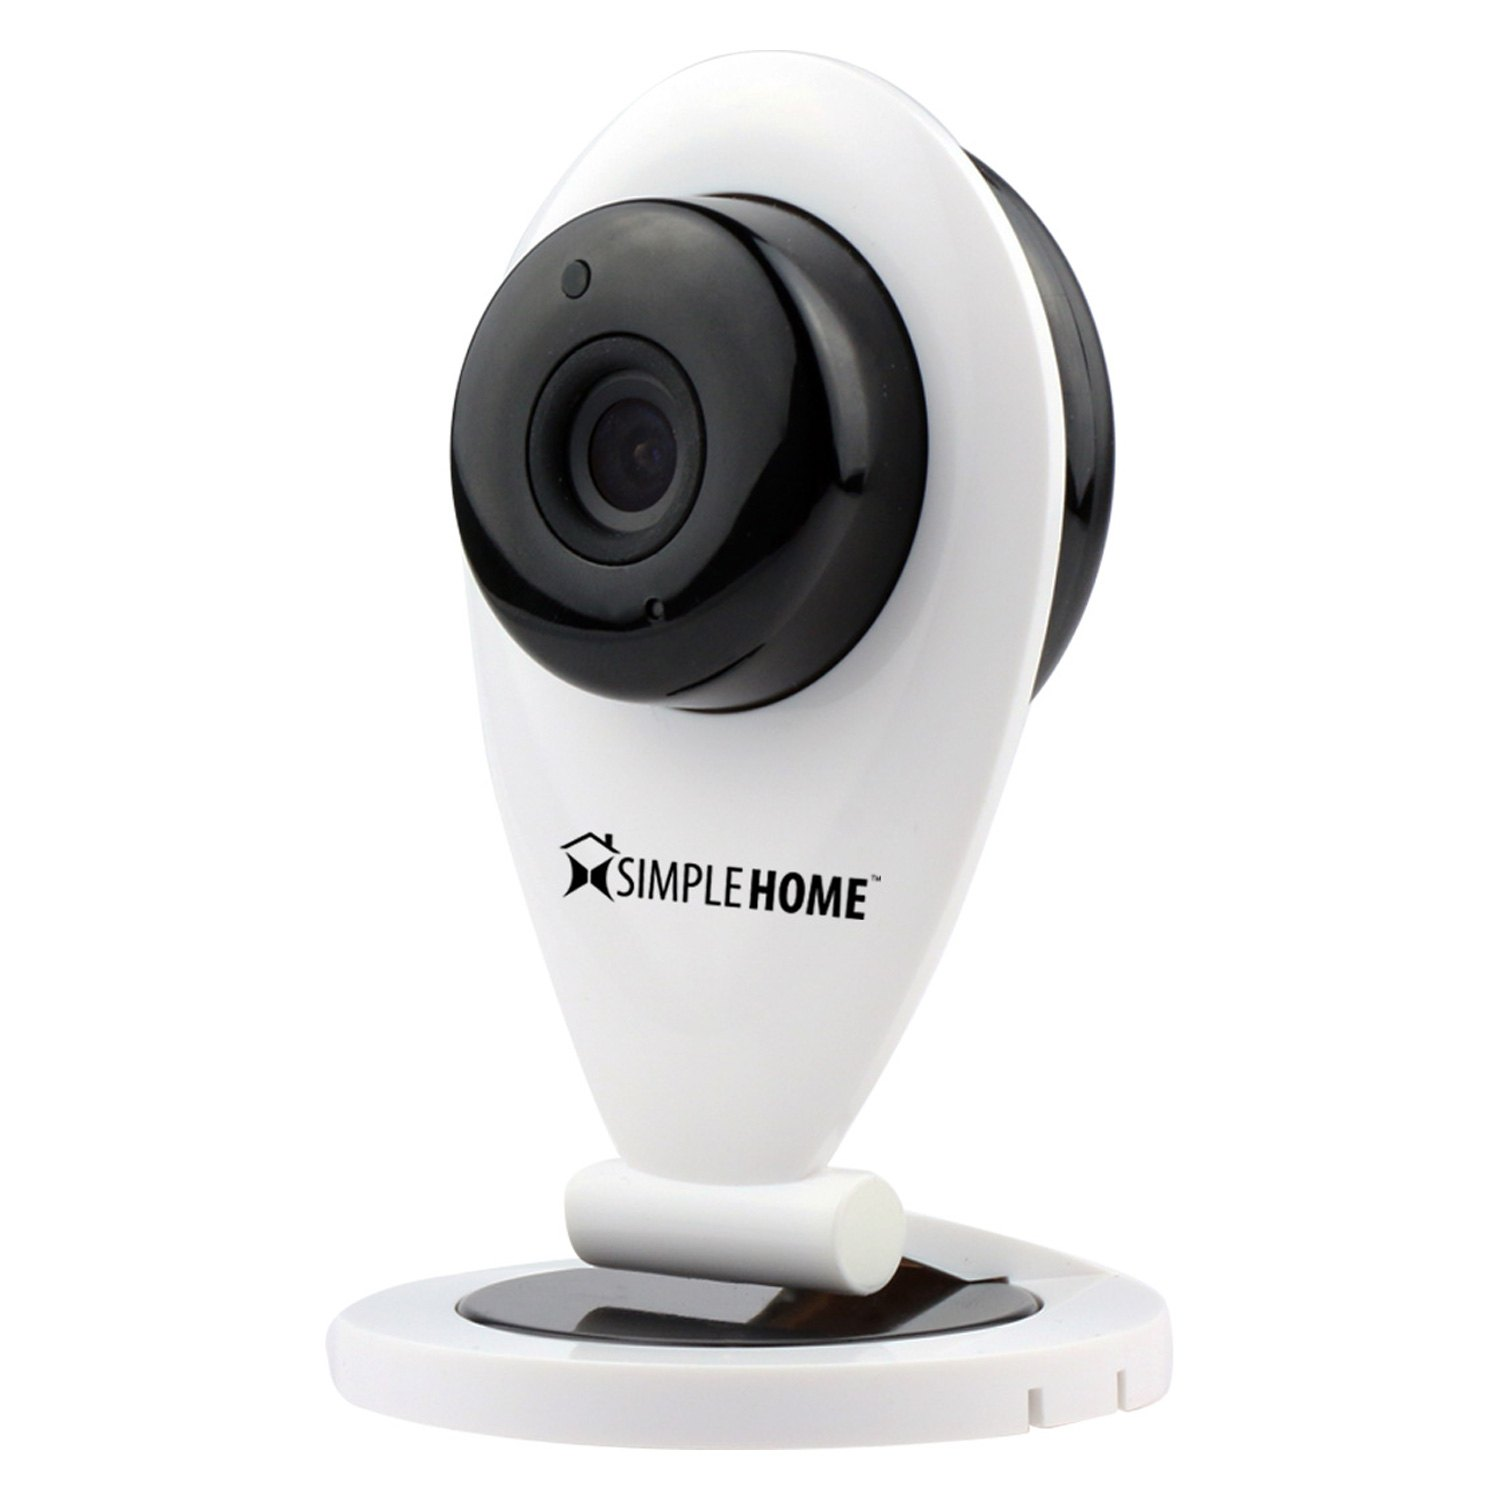 Camera Exterieur Motorisee Wifi Camera Maison Wifi Best Camra Espion Hd P Wifi Spy Cam